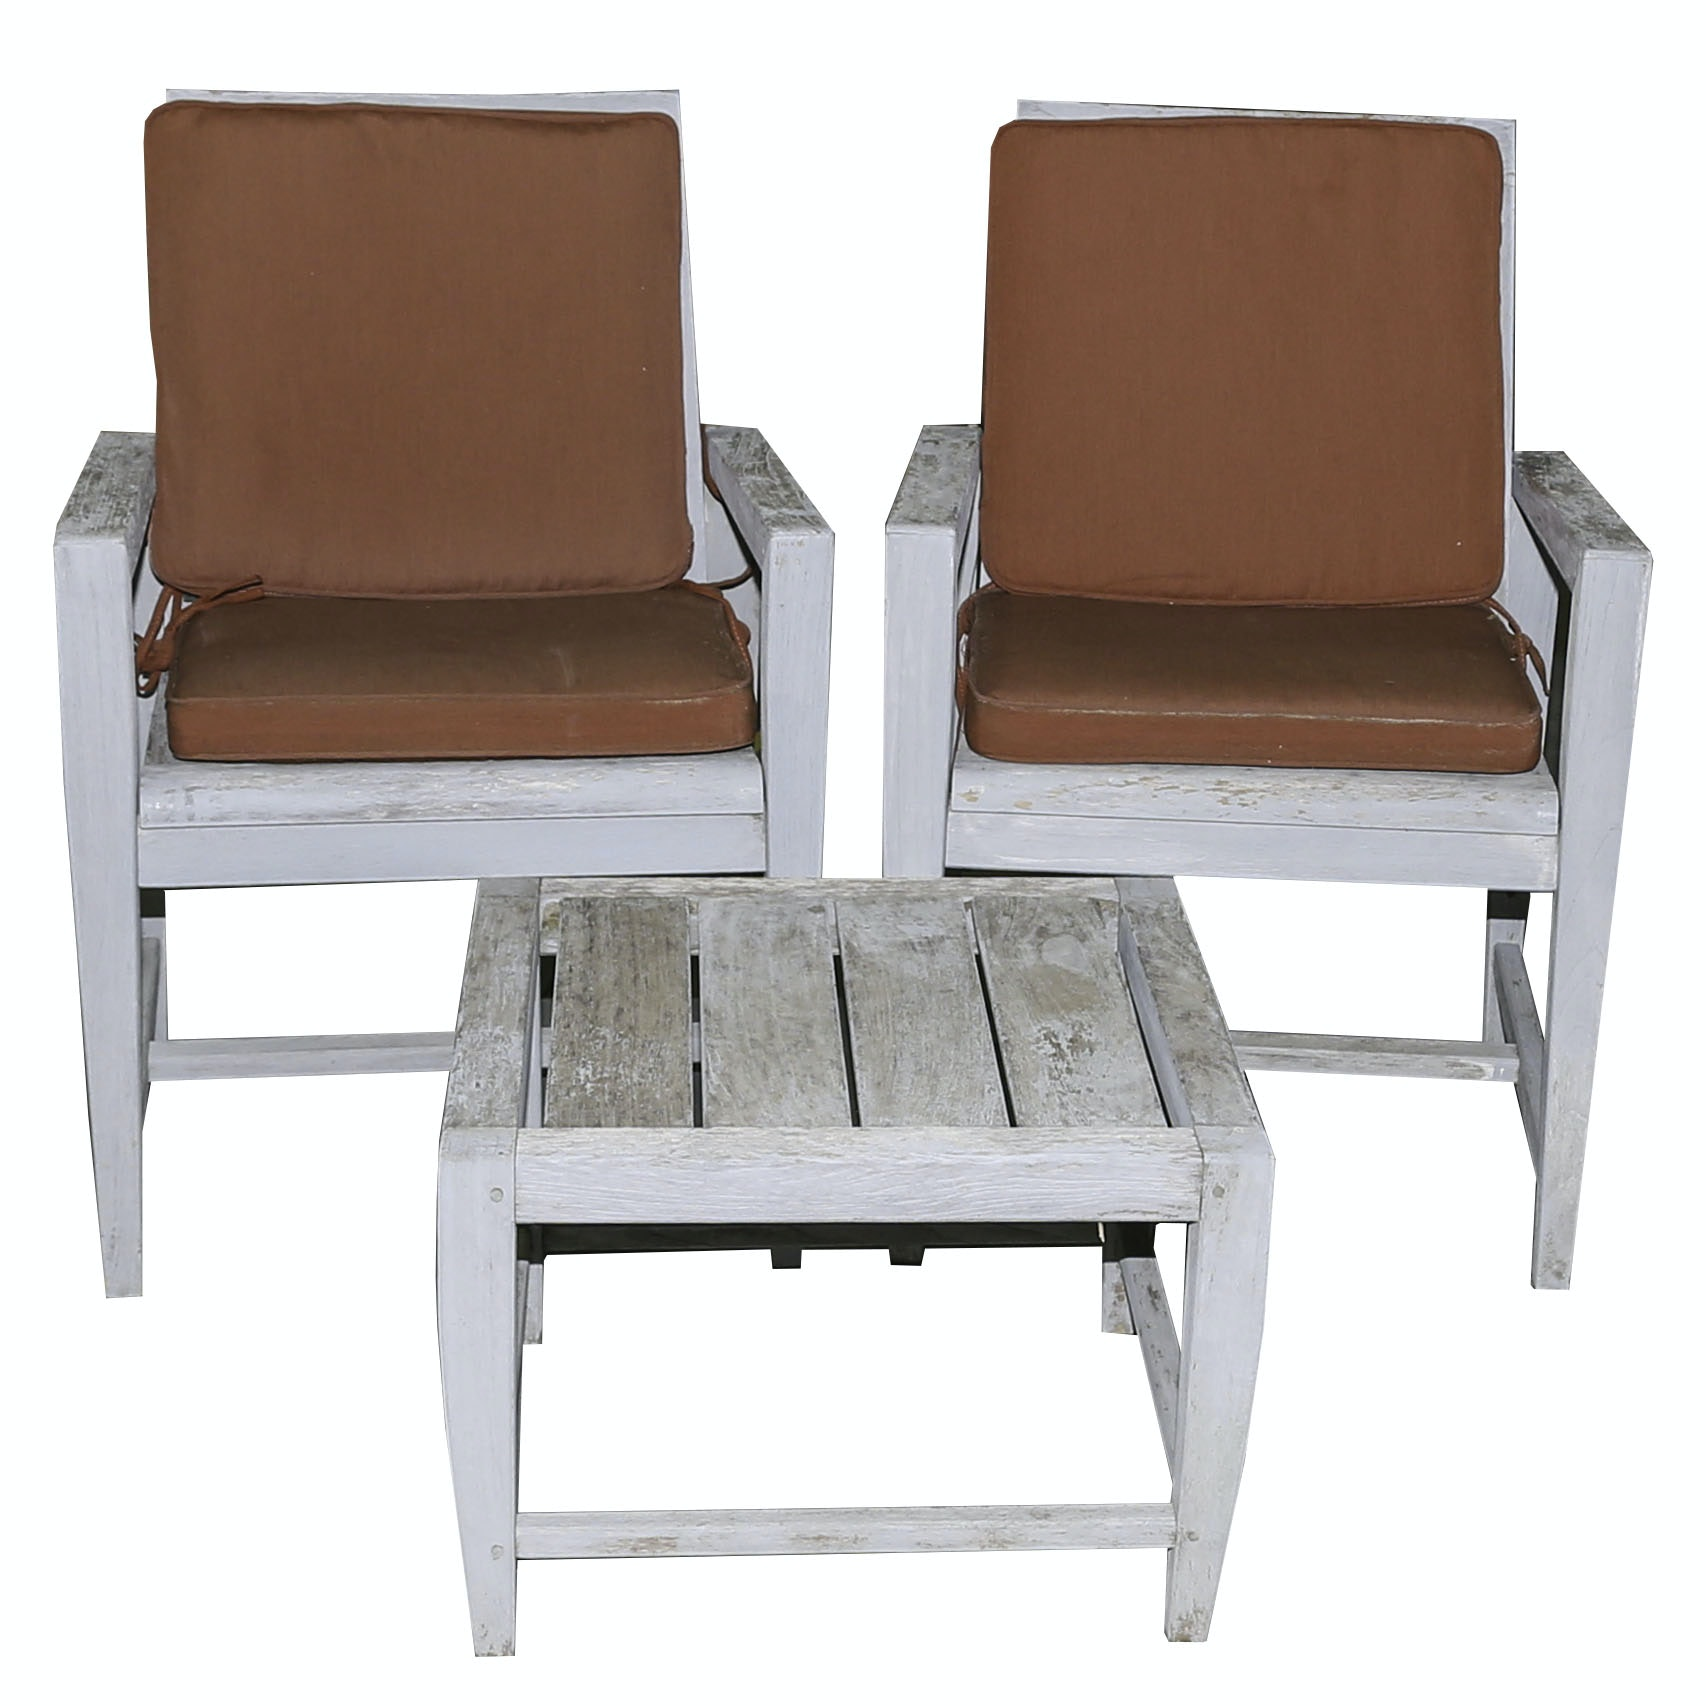 Kingsley-Bate Teak Patio Chairs and Table